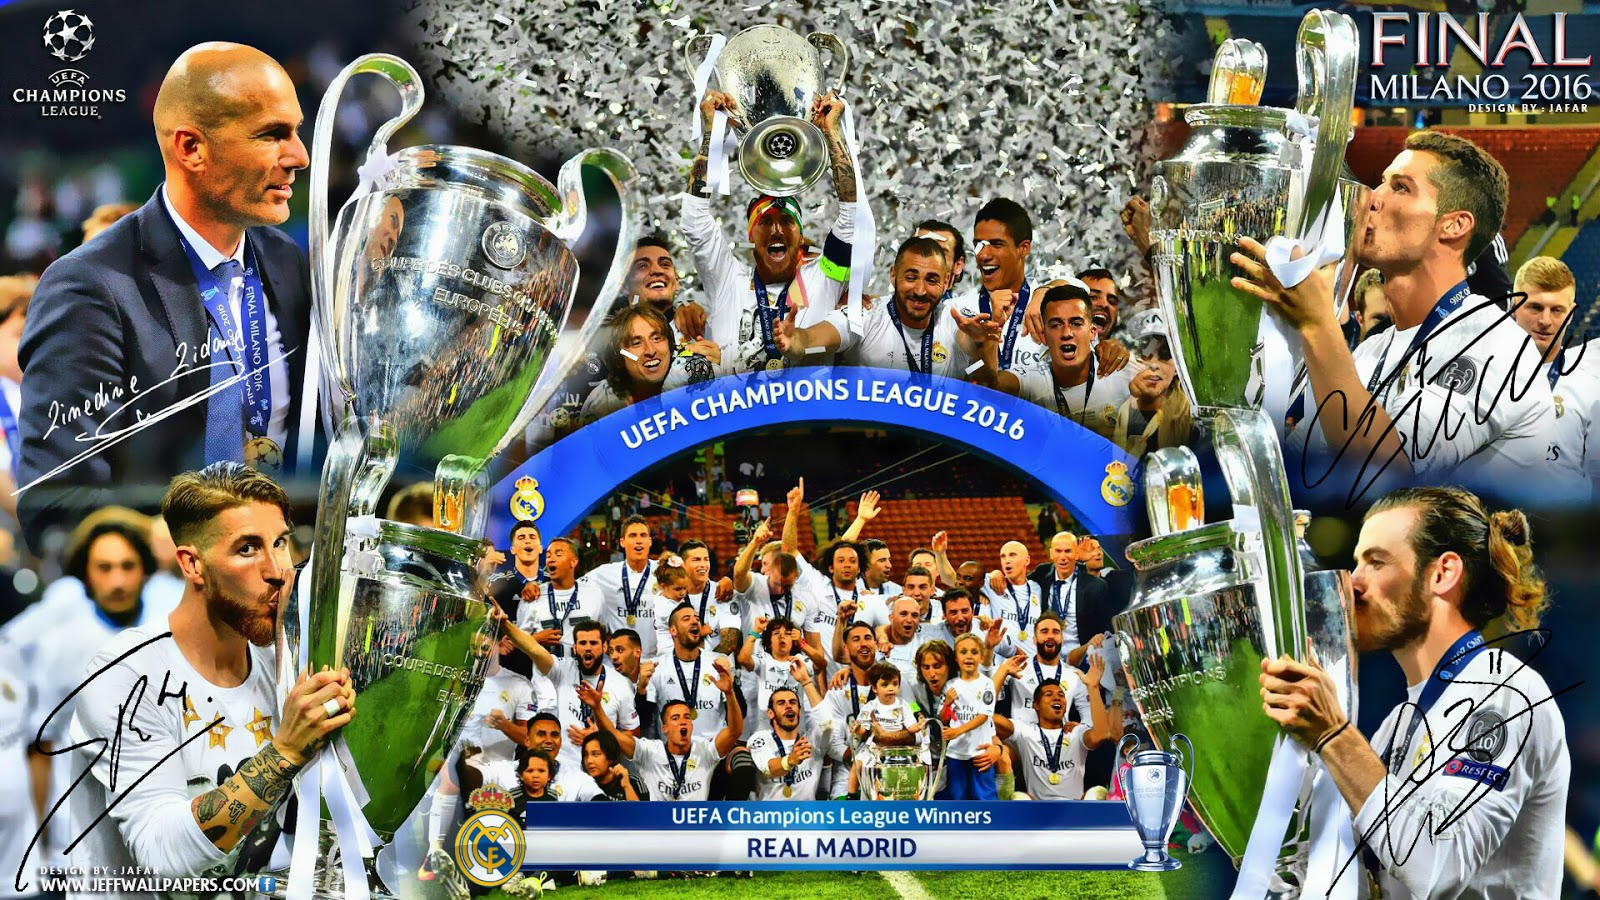 champion league winners